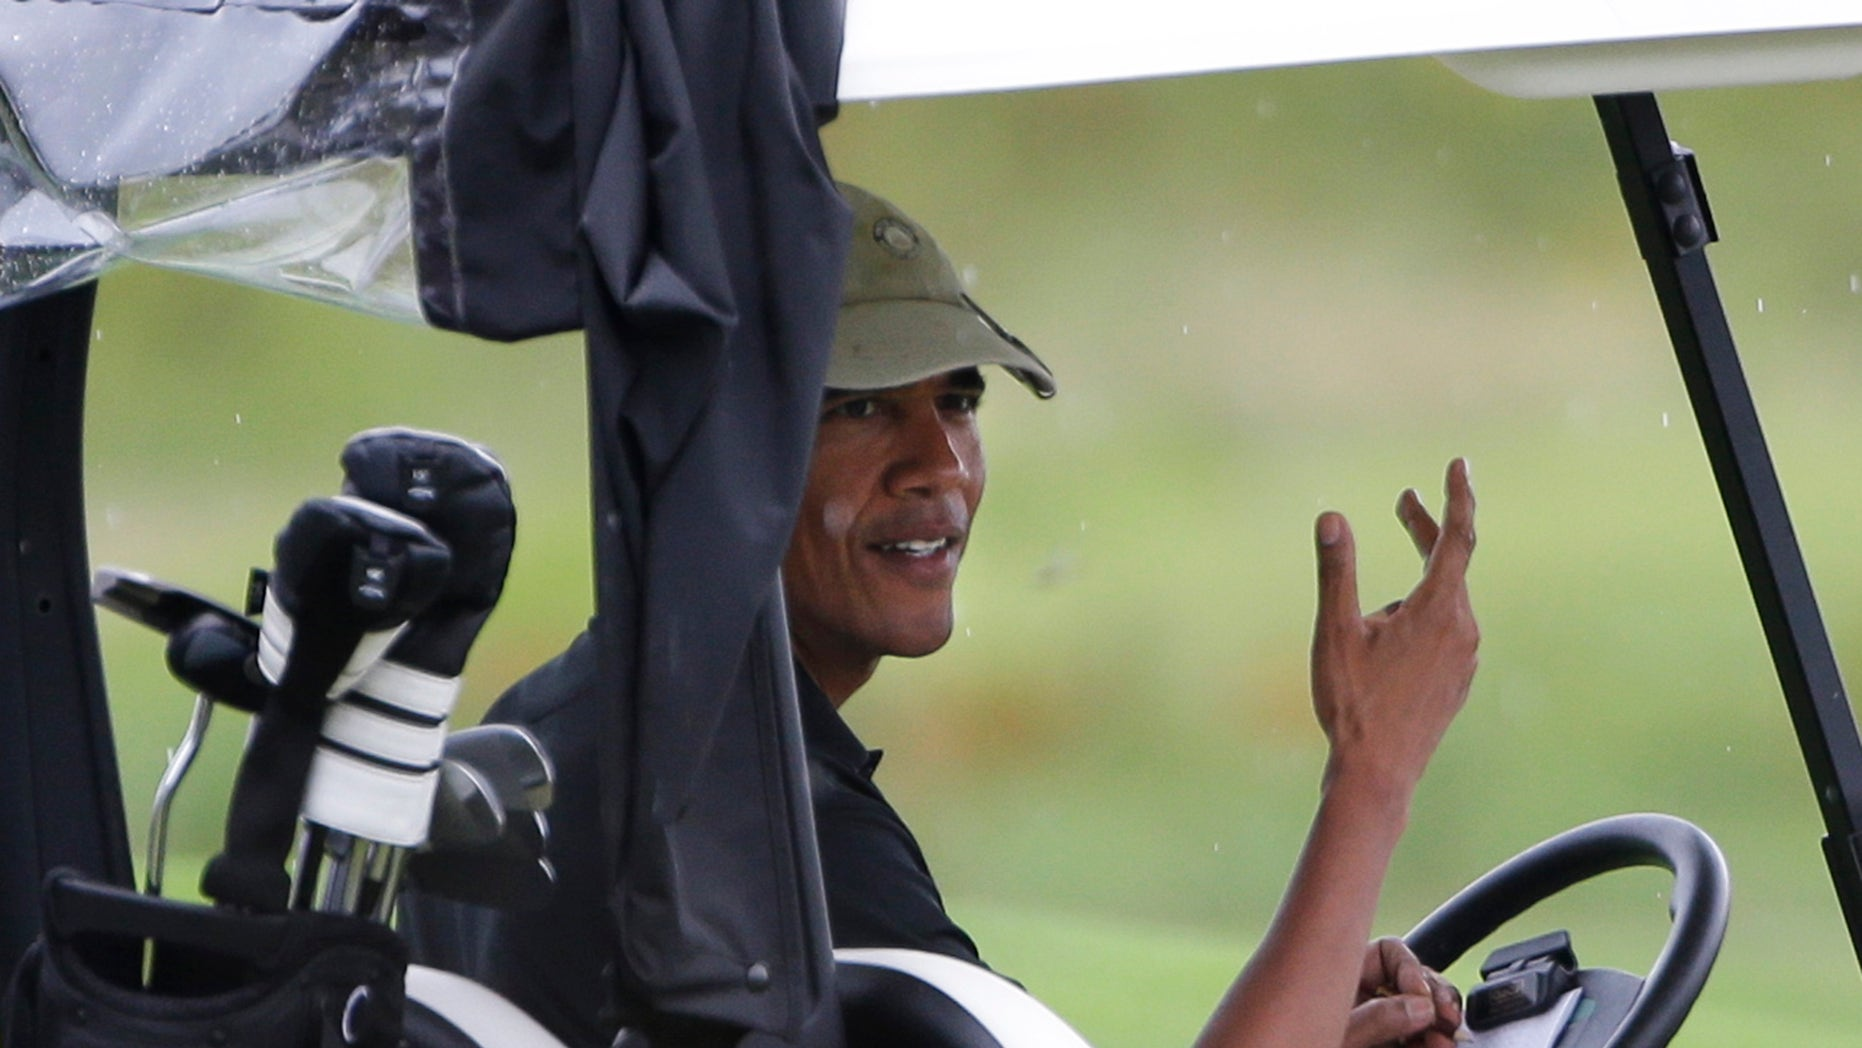 President Barack Obama gestures from his golf cart off while golfing at Vineyard Golf Club in Edgartown, Mass., on the island of Martha's Vineyard Sunday, Aug. 18, 2013. (AP Photo/Steven Senne)